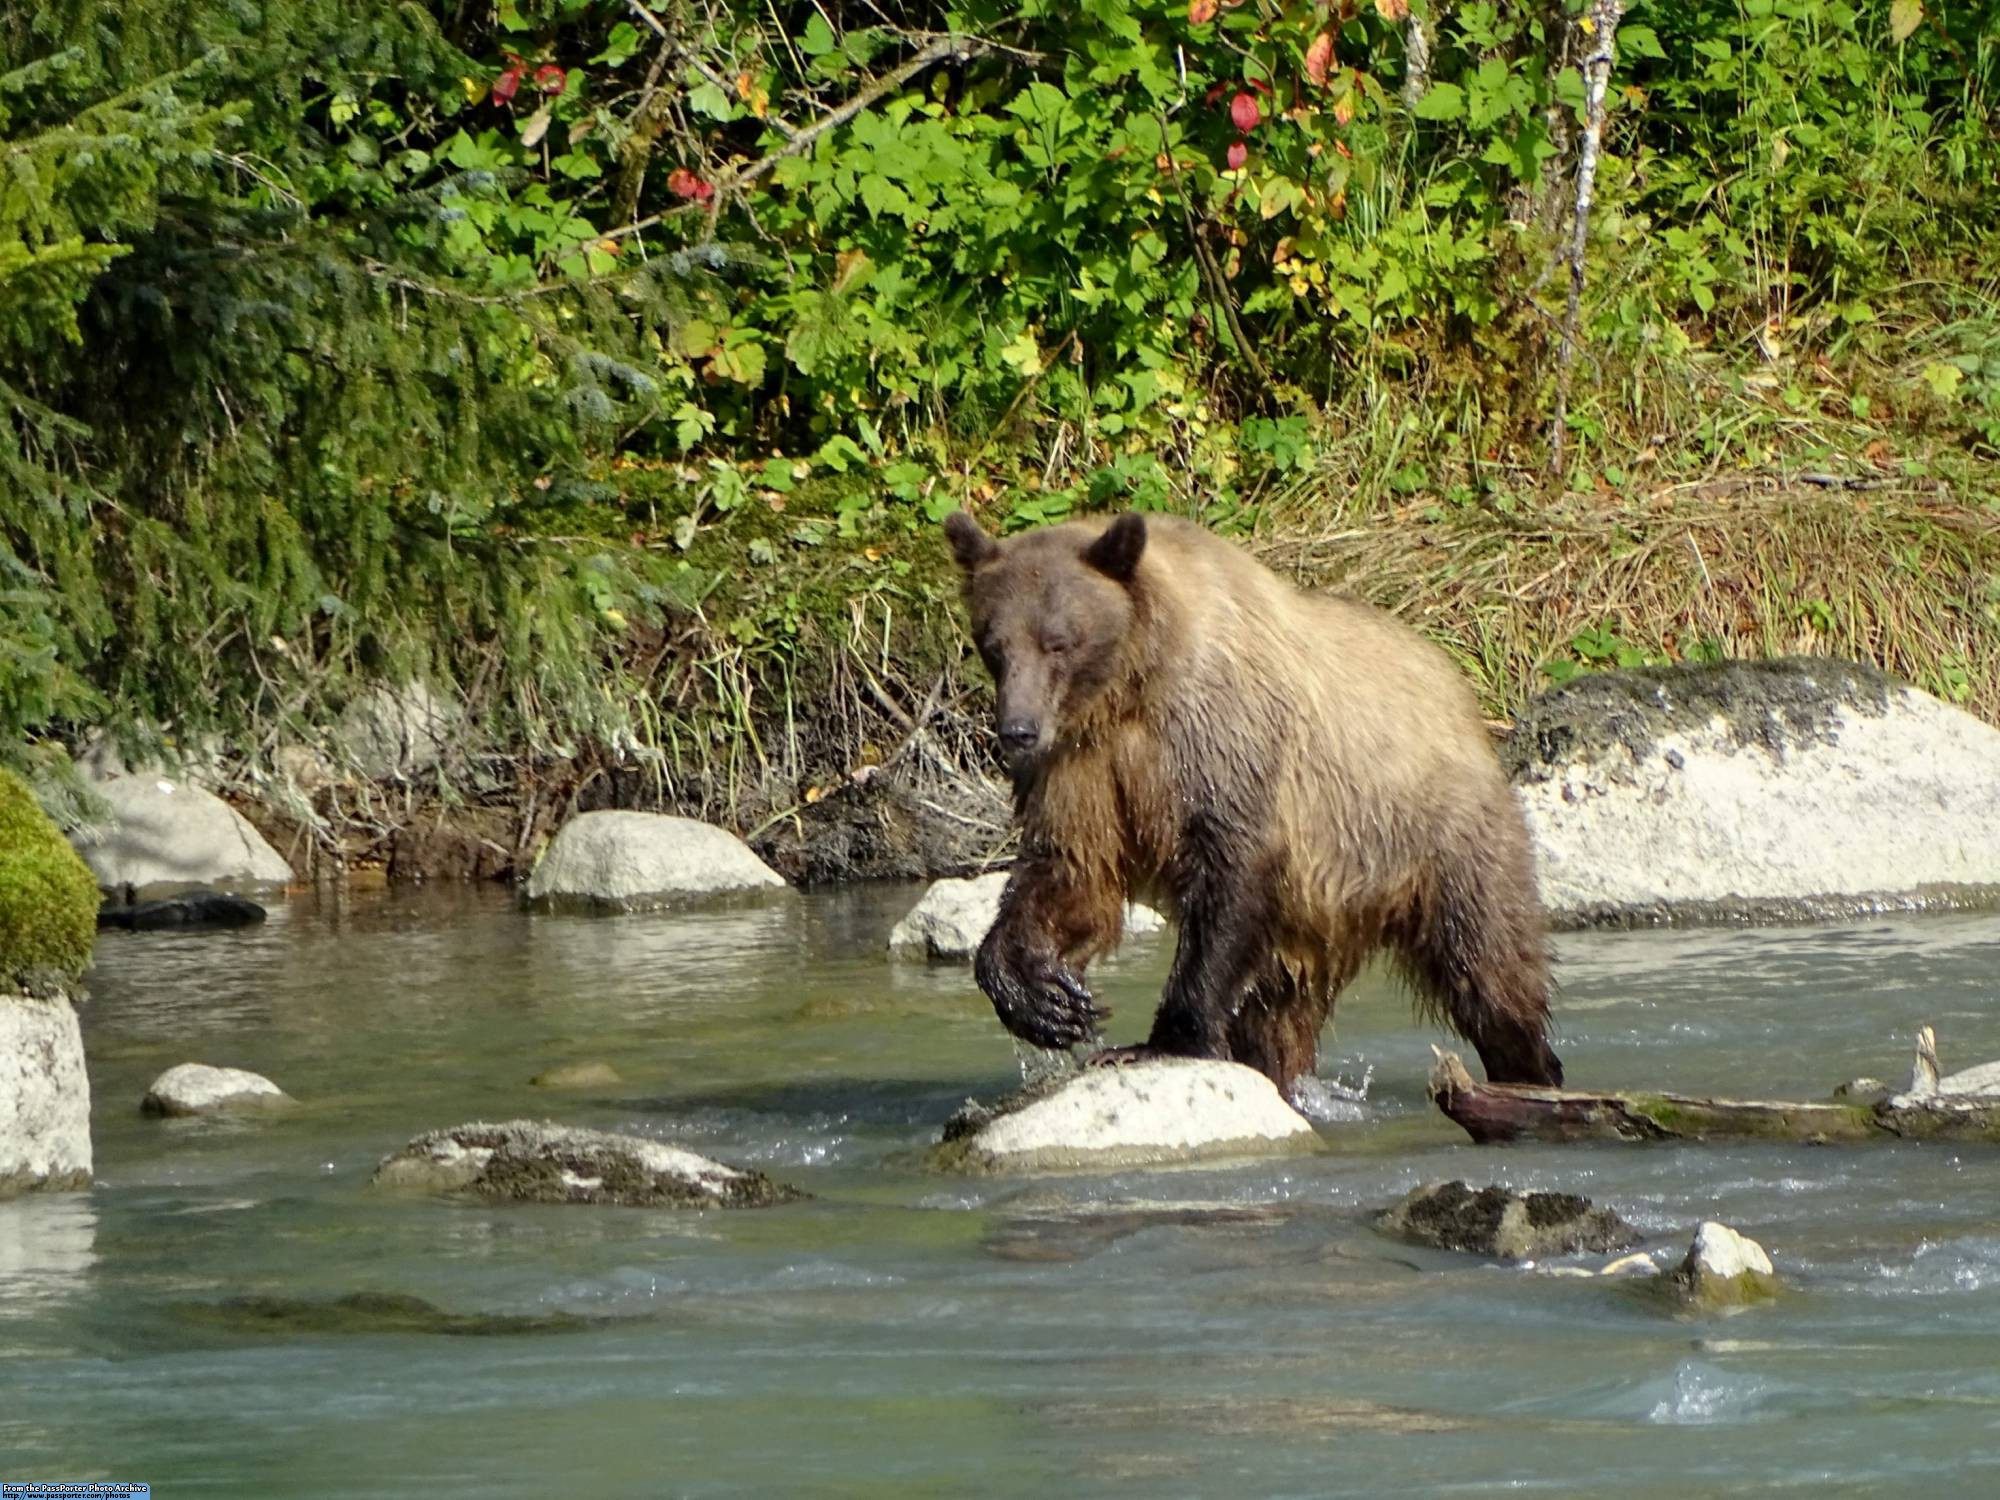 Experience the wildlife of Skagway, Alaska on your Disney Cruise | PassPorter.com